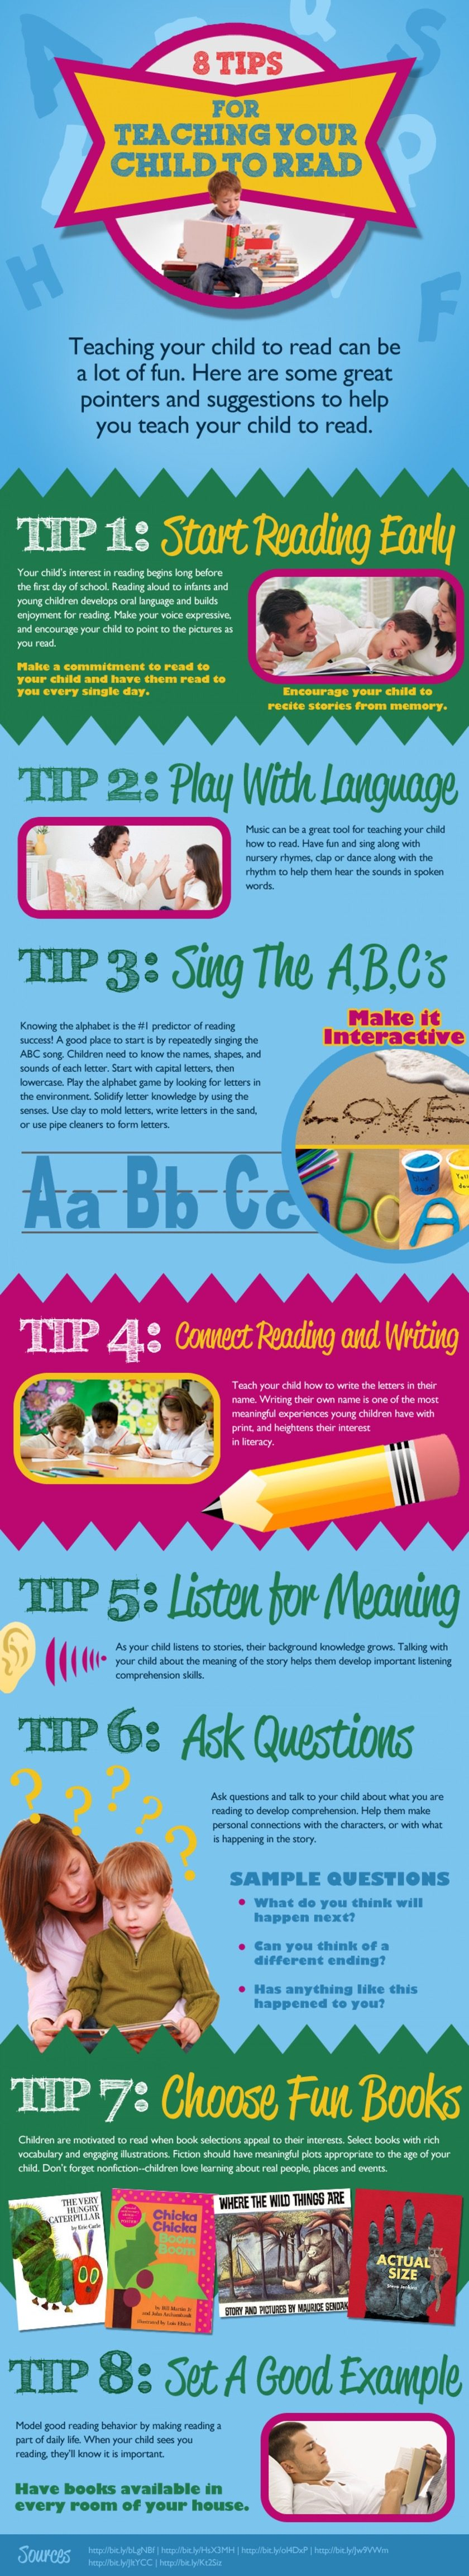 Great tips for teaching your kid to read #infographic